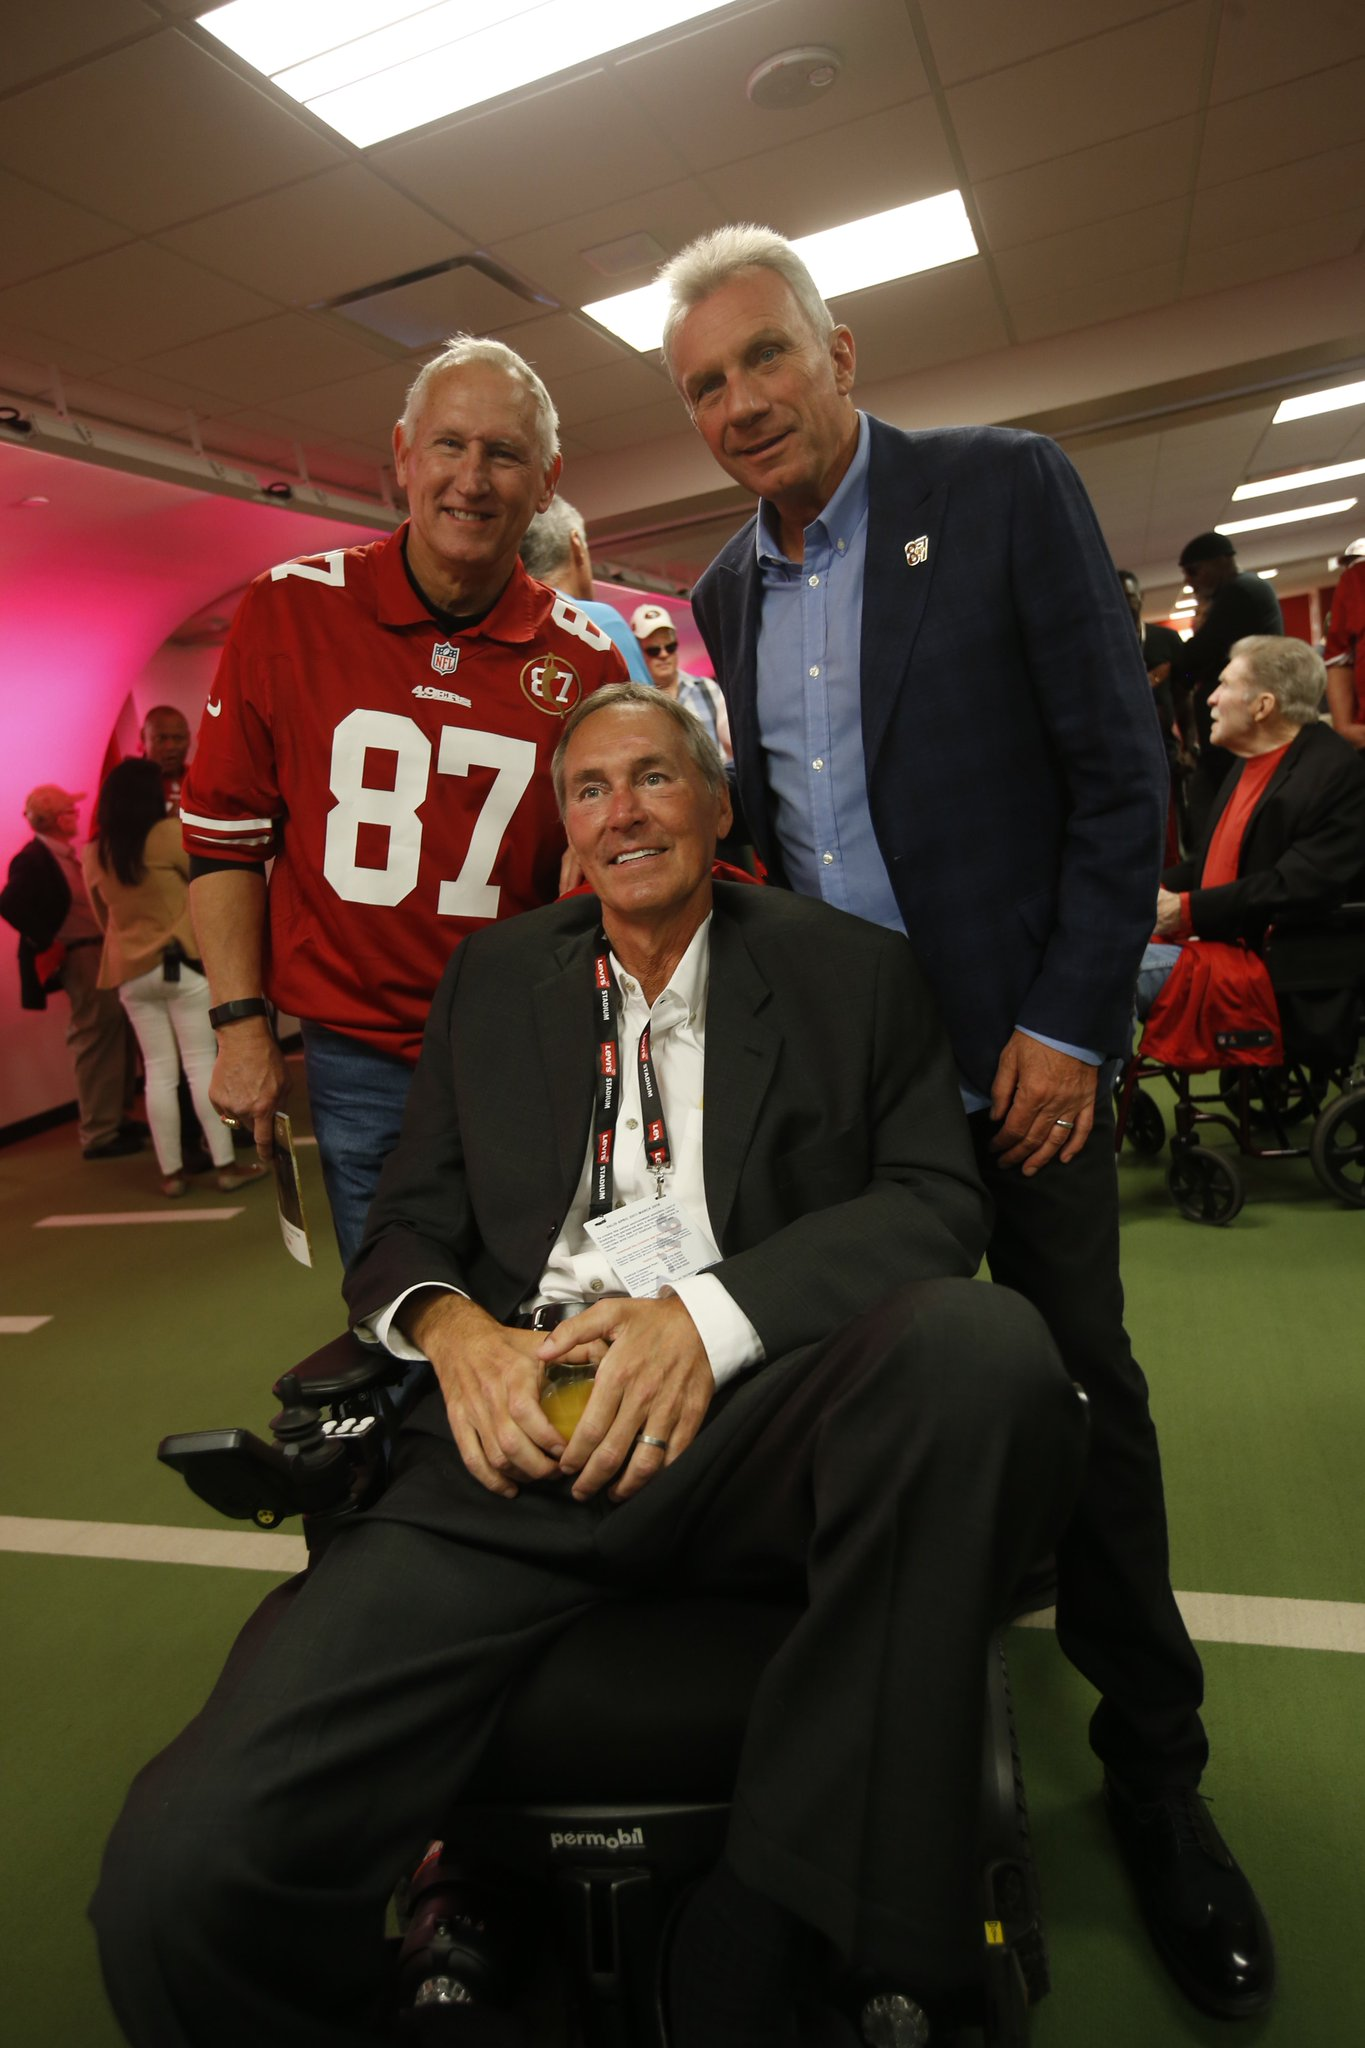 49ers legend Dwight Clark, 61, dies after battle with ALS https://t.co/adhZqigrtE https://t.co/0o7SNuDOPl